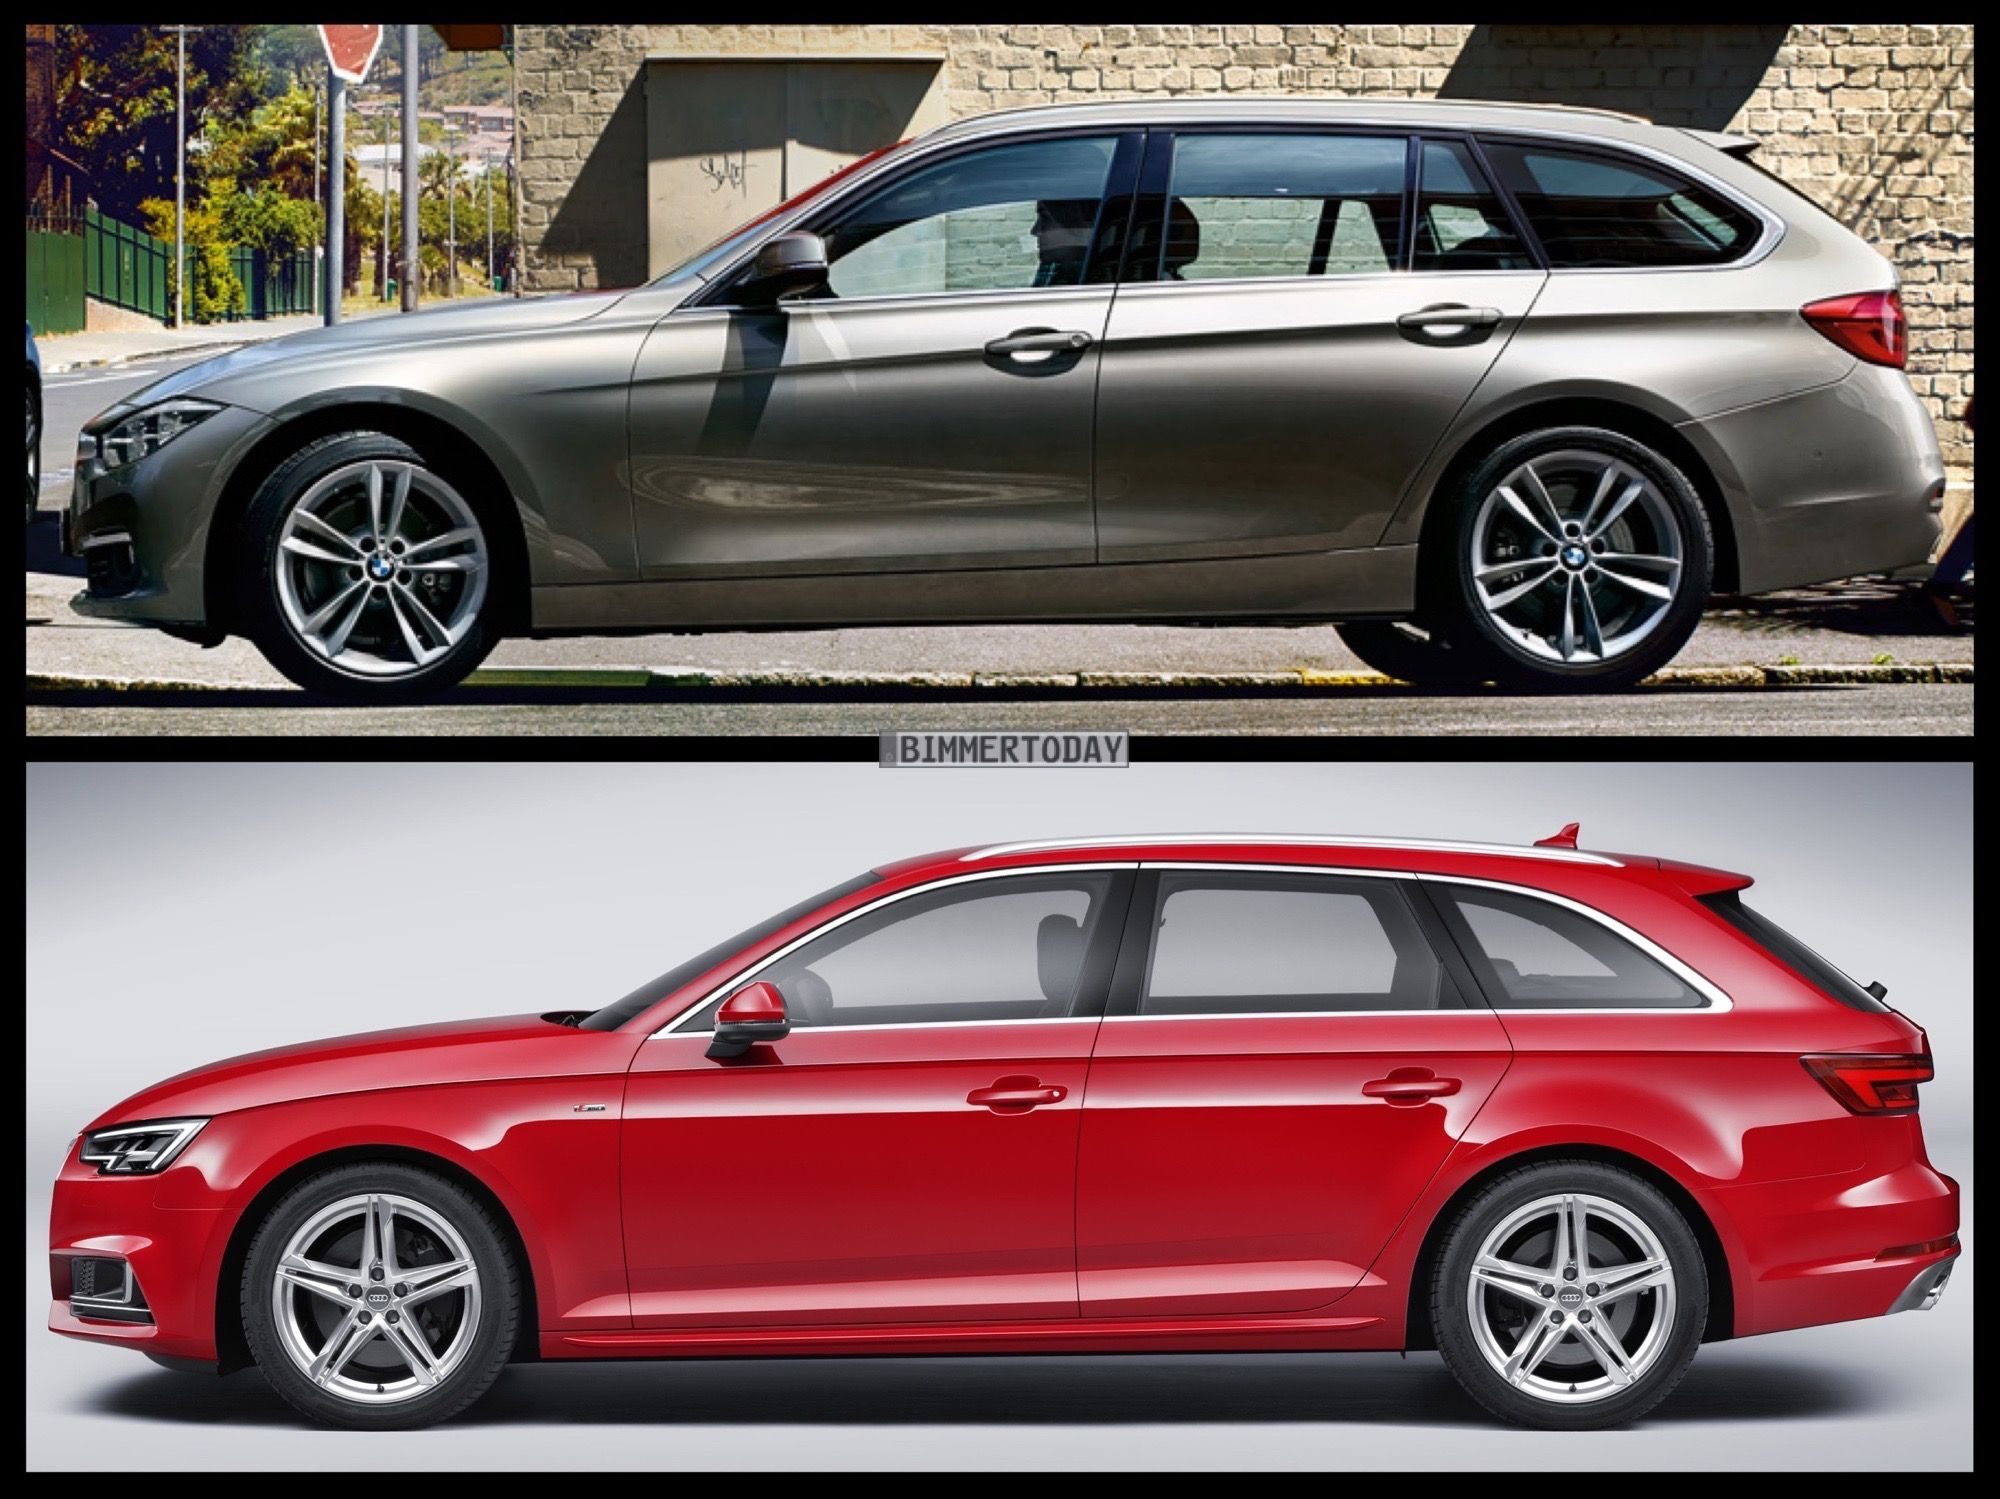 bmw 3 series touring vs audi a4 avant vs mercedes benz c class estate. Black Bedroom Furniture Sets. Home Design Ideas